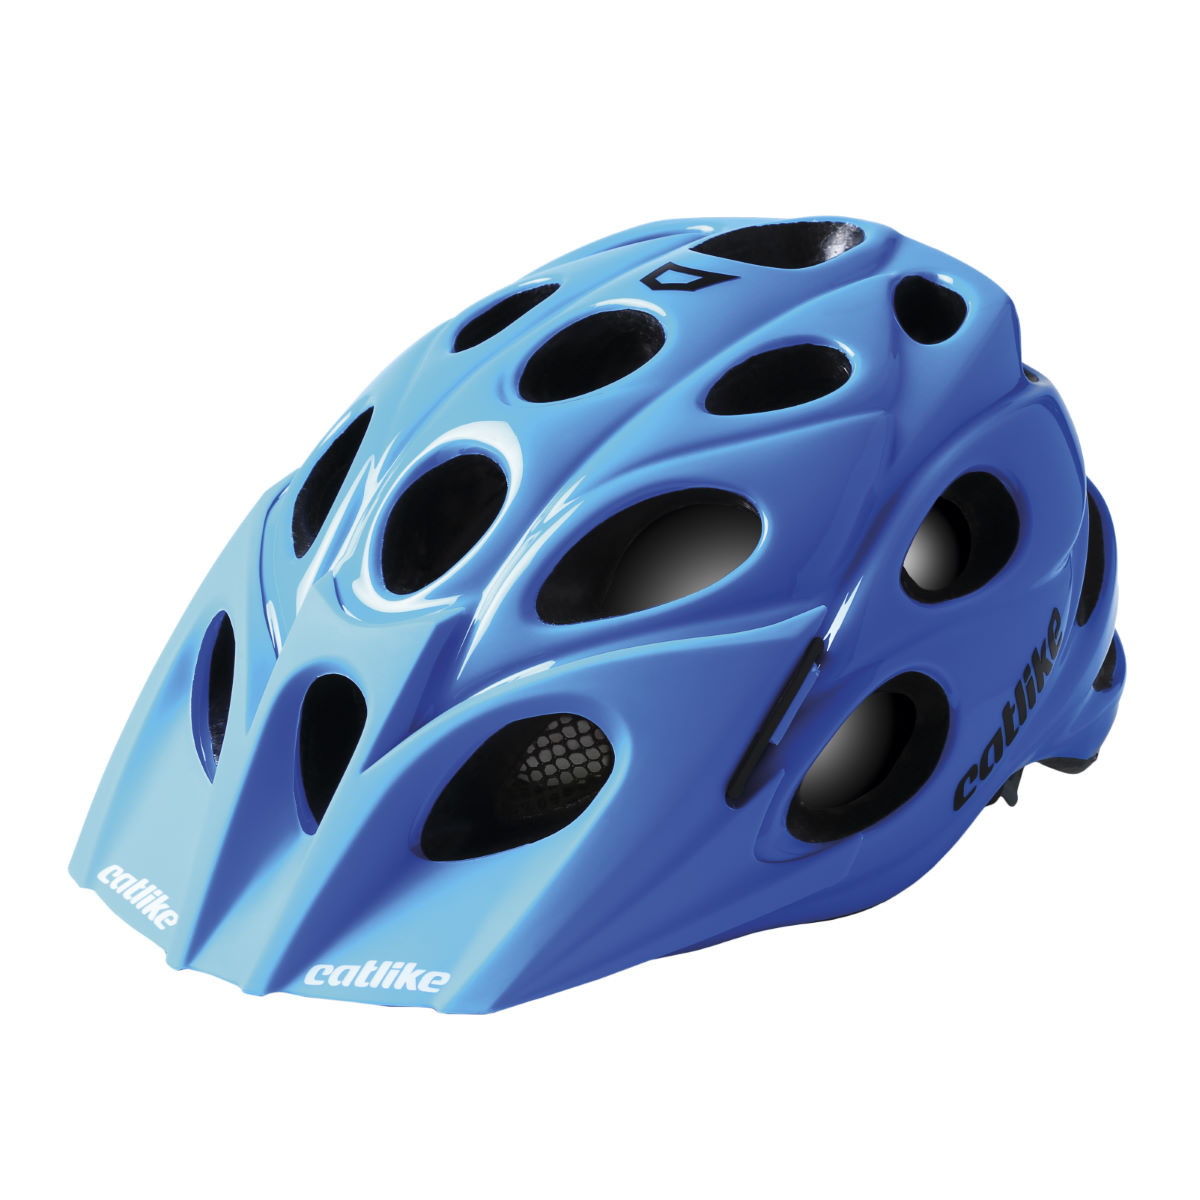 Casque VTT Catlike Leaf - M Blue Glossy Casques